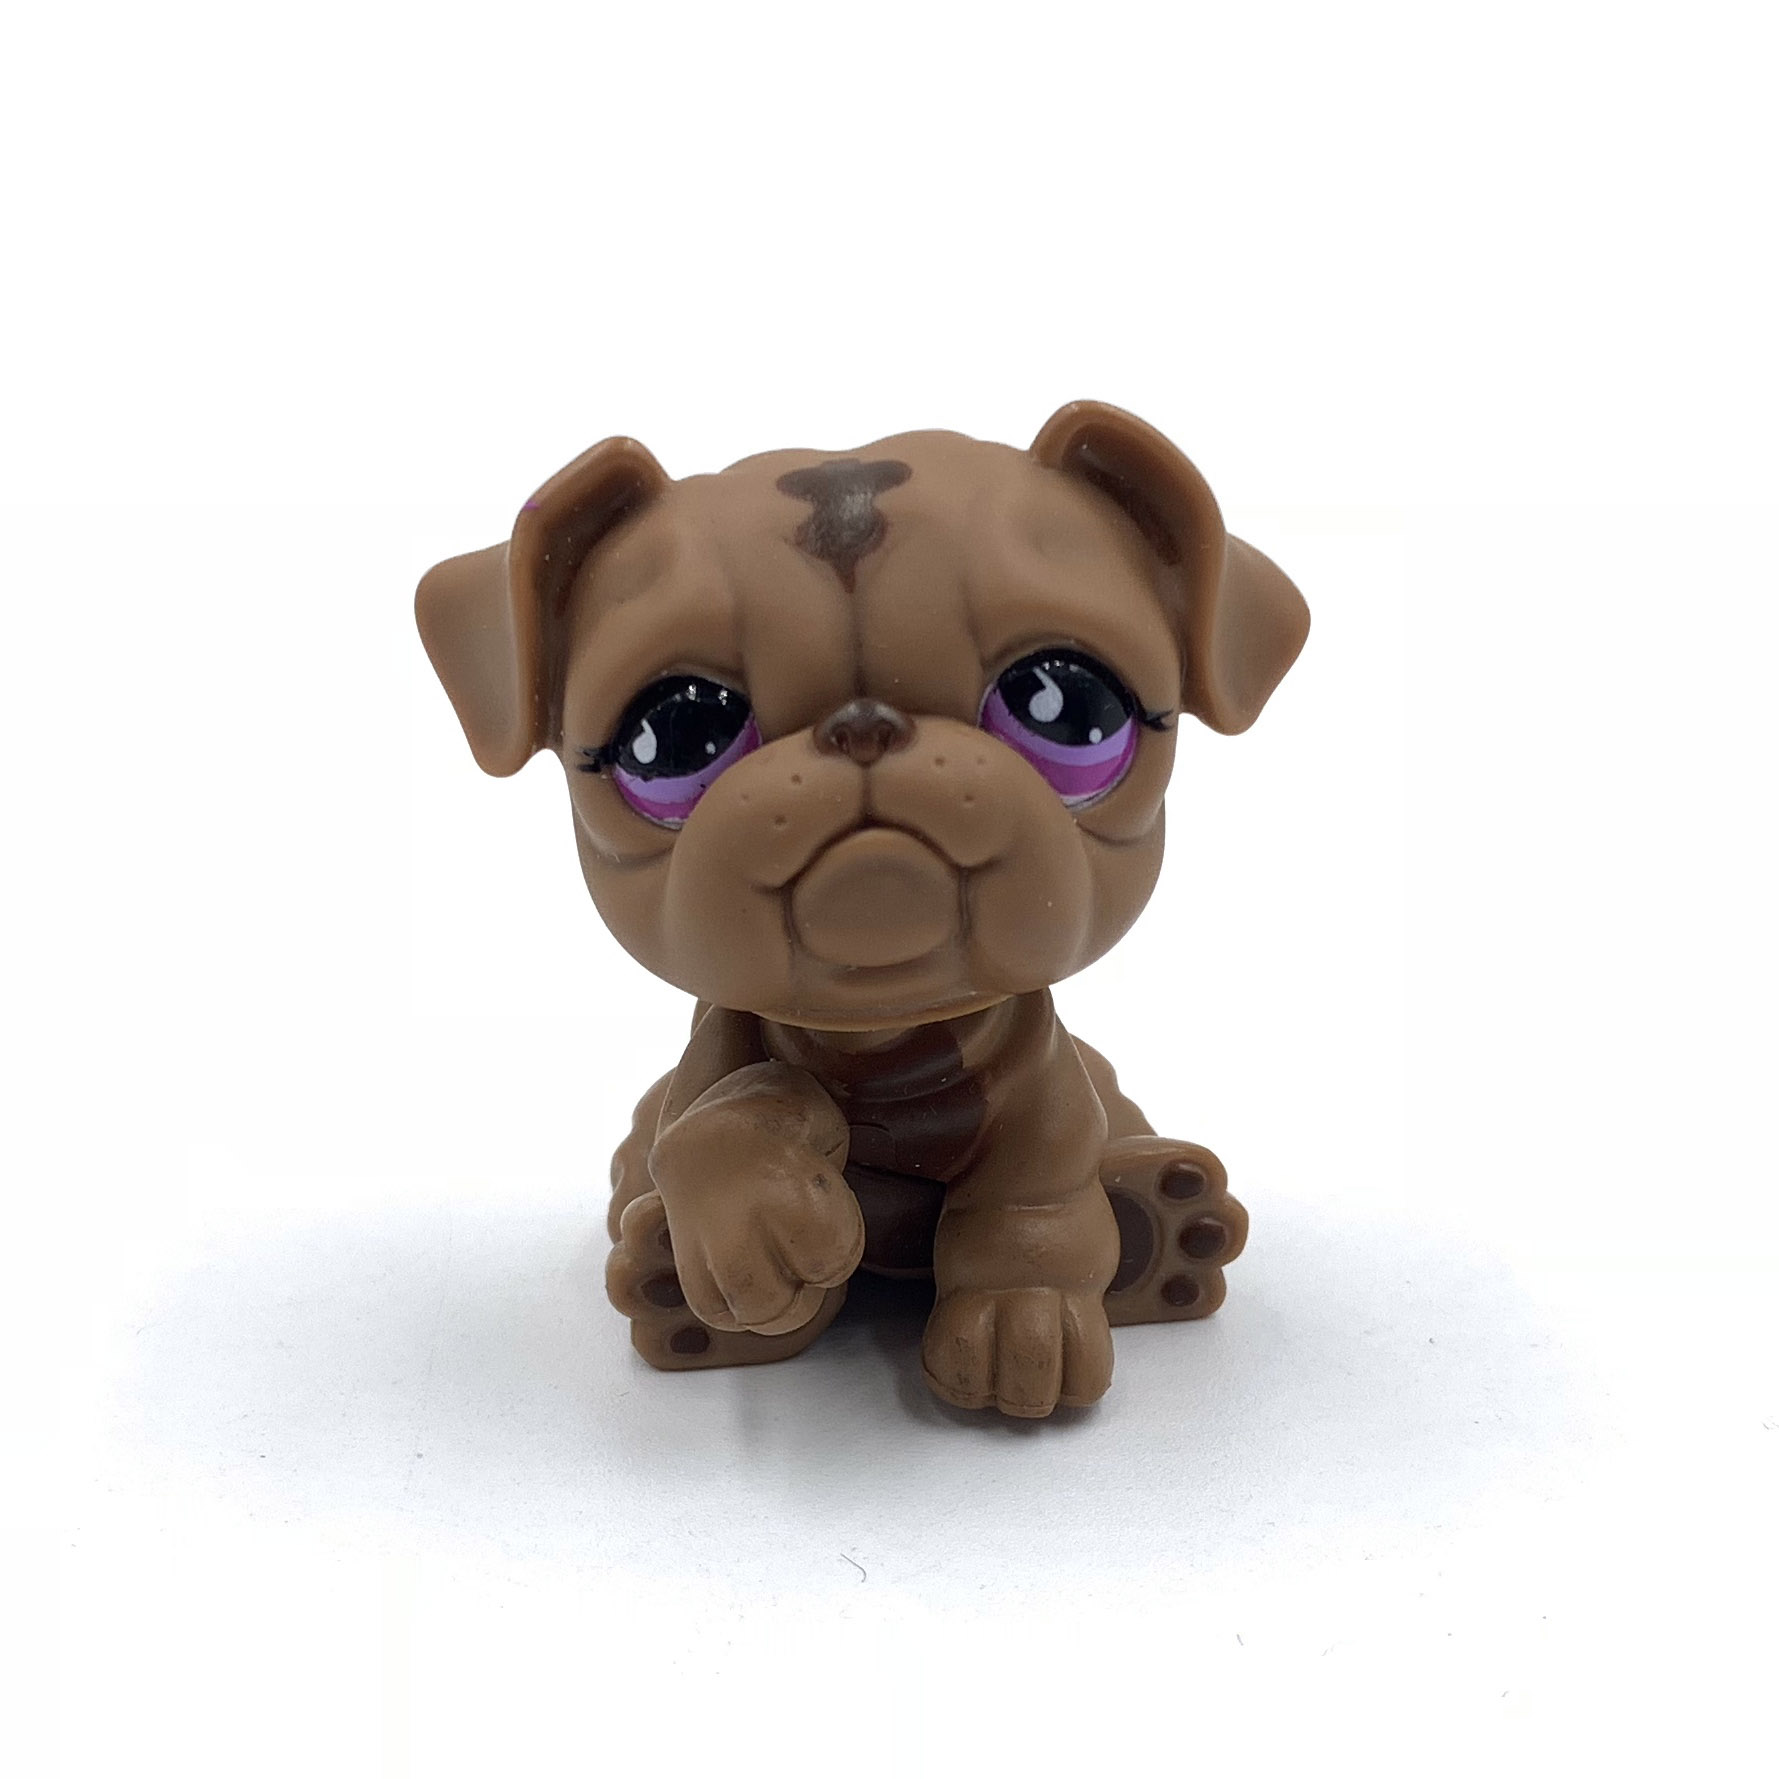 Old Pet Shop Toys BULLDOG Dog 881 Bronw Dog With Pink Eyes Old Original Model Toy For Kids Christmas Gift